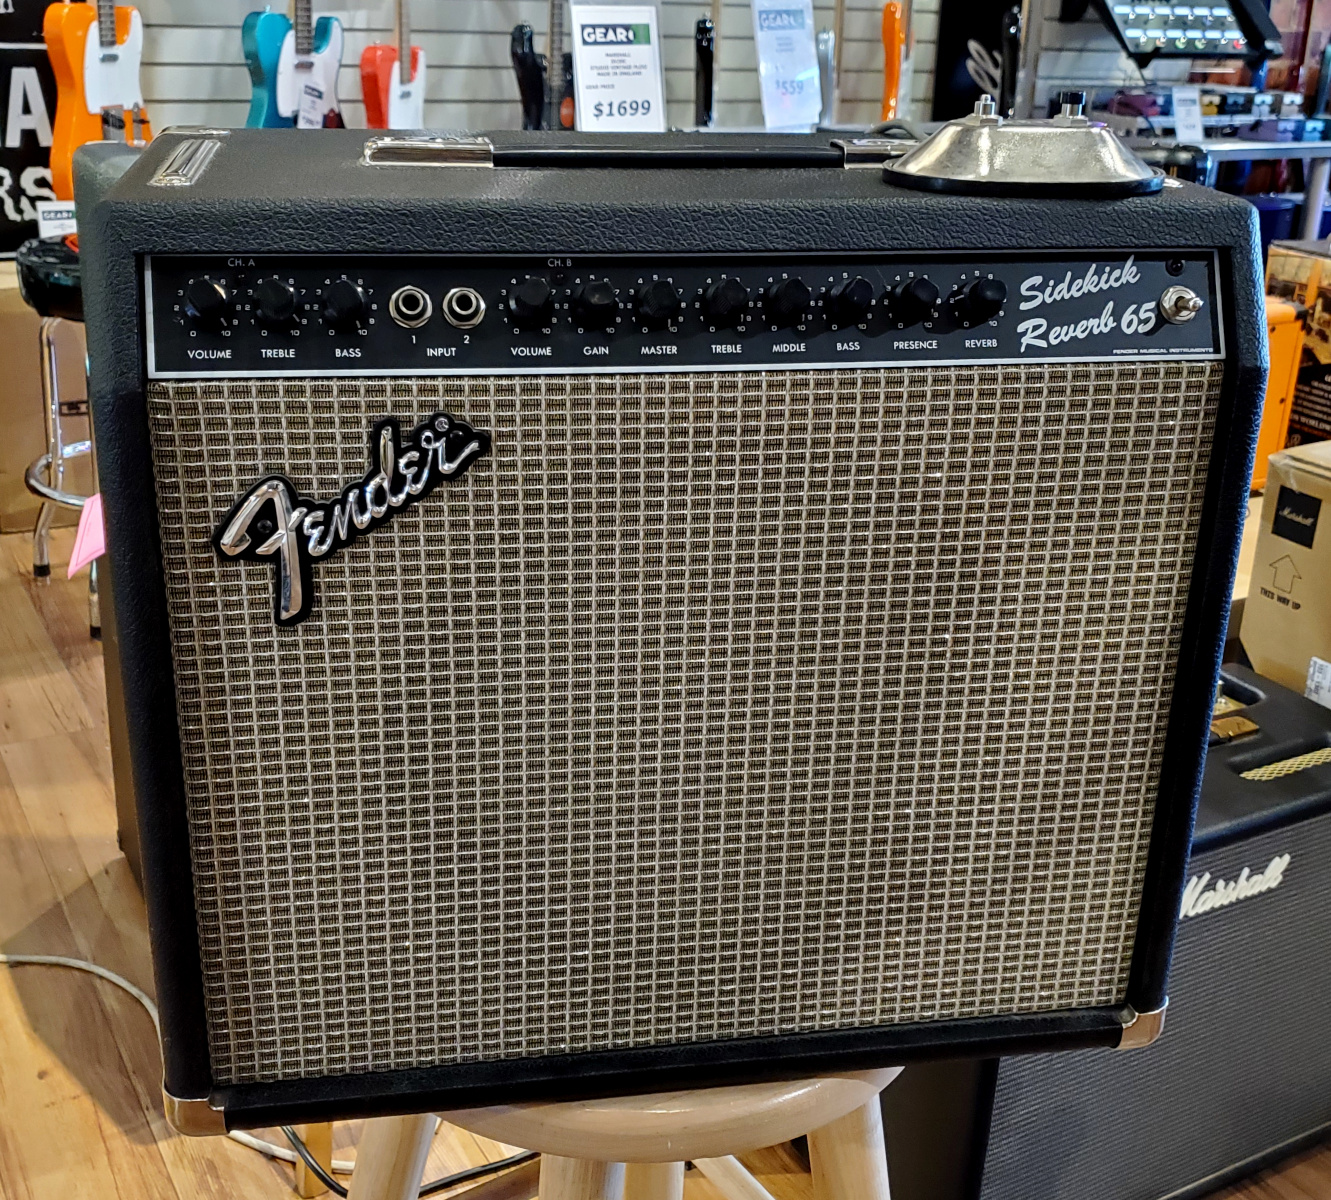 USED Fender Sidekick Reverb 65 w/cover